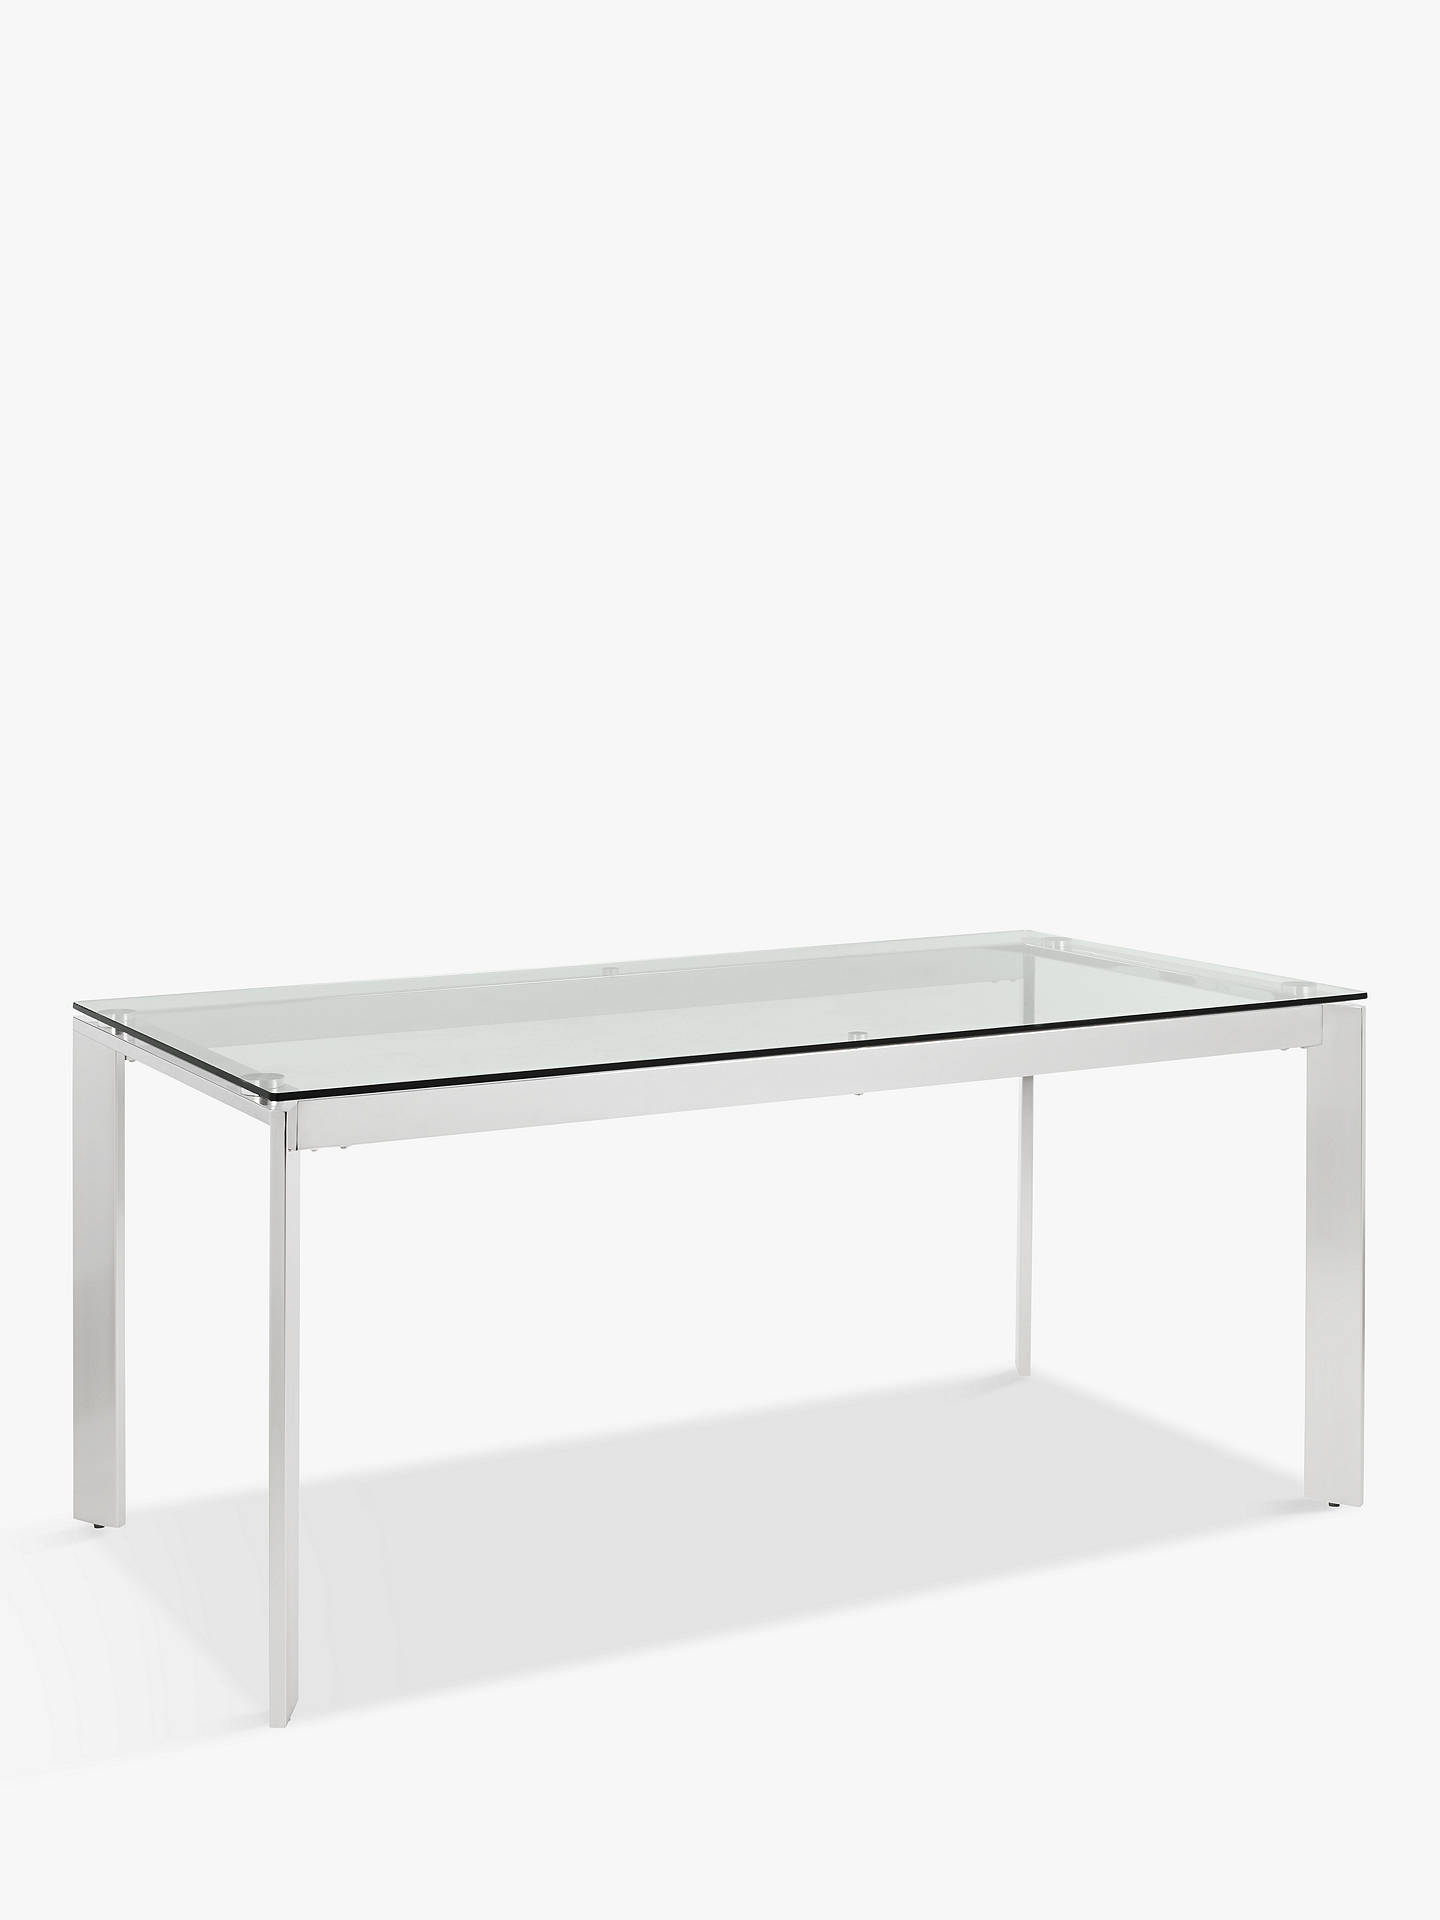 BuyJohn Lewis & Partners Tropez Glass Top Dining Table Online at johnlewis.com